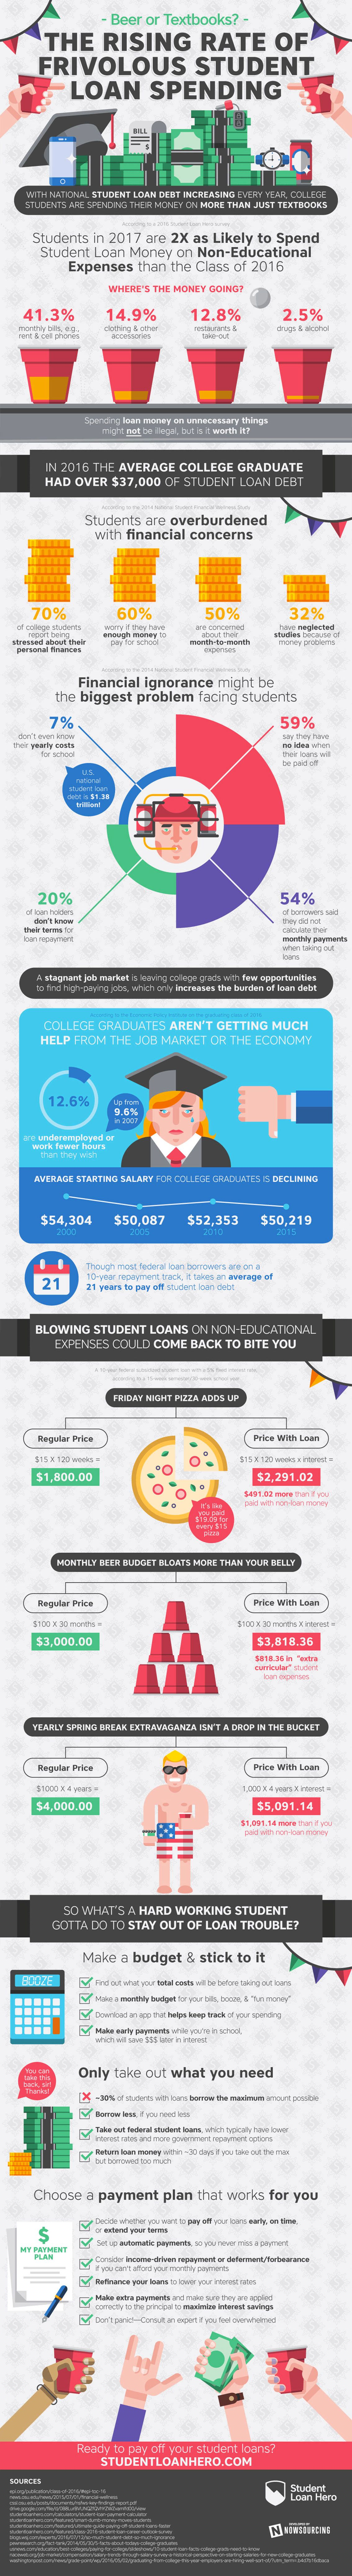 The Frivolous Spending Of Student Loans On Other Things Infographic Student Loans Loan Money Educational Infographic